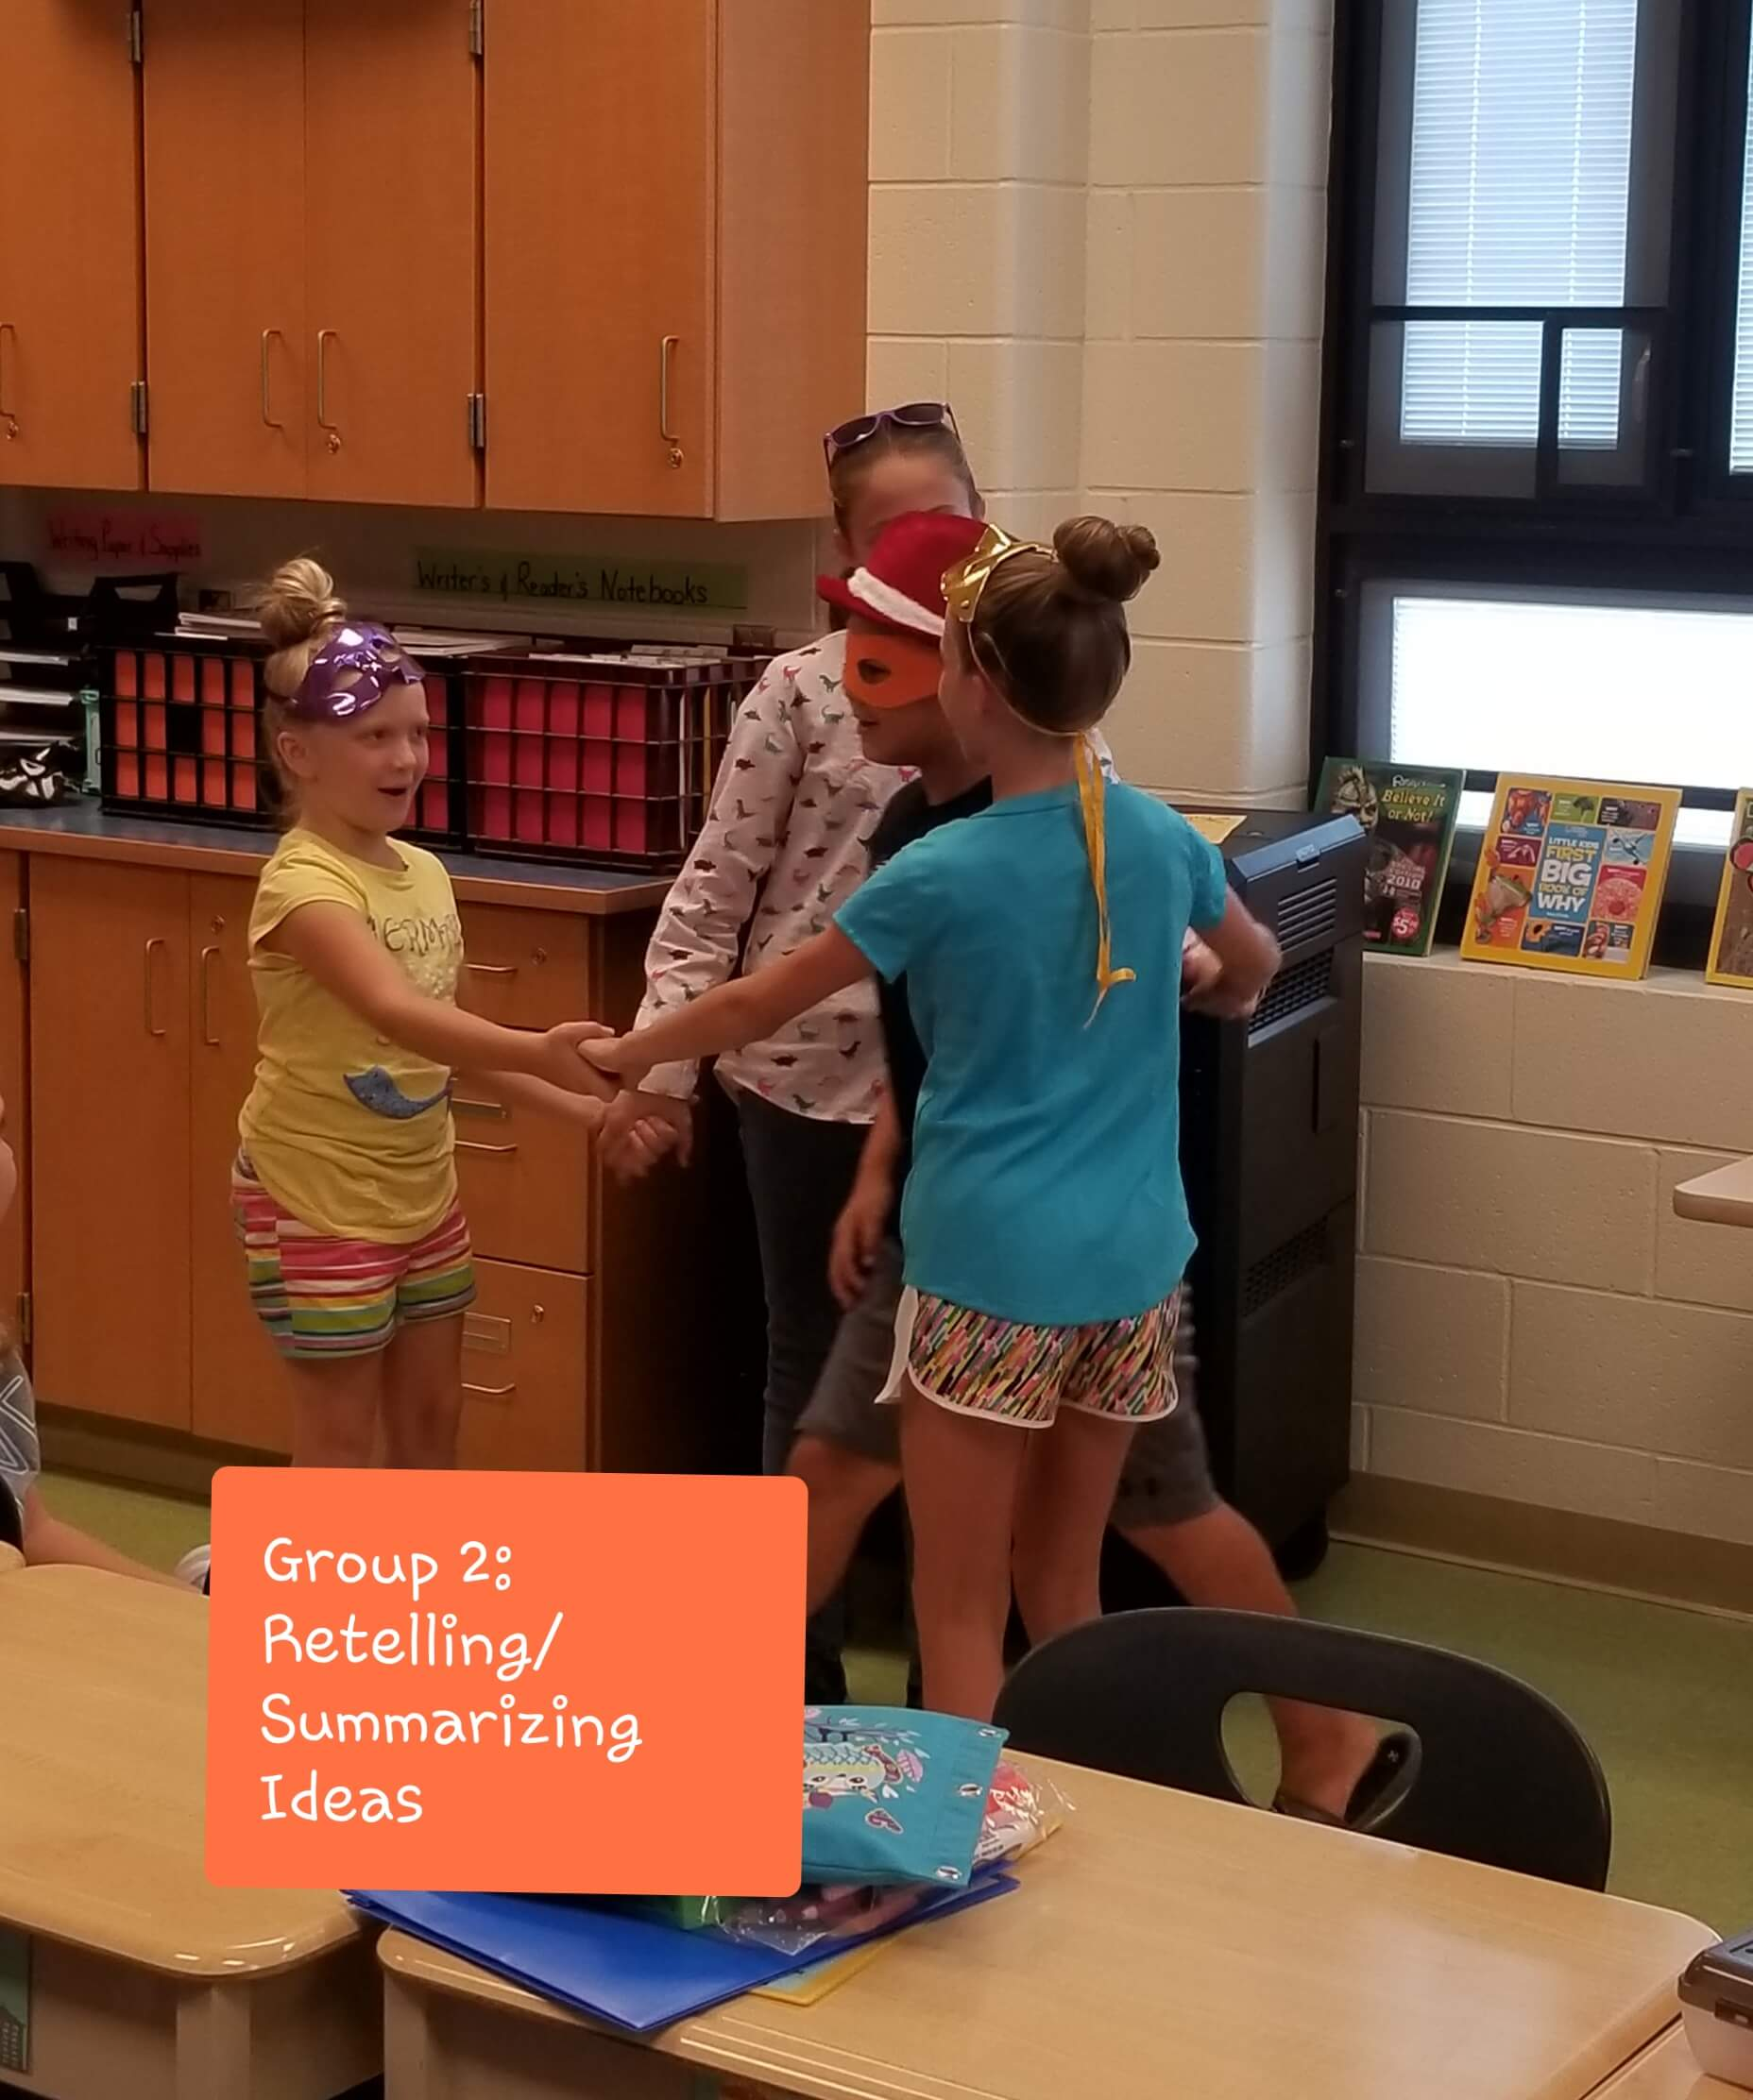 Erica Shadley Classroom: Comprehension Strategy Small Group Retell/Summarize Ideas 2